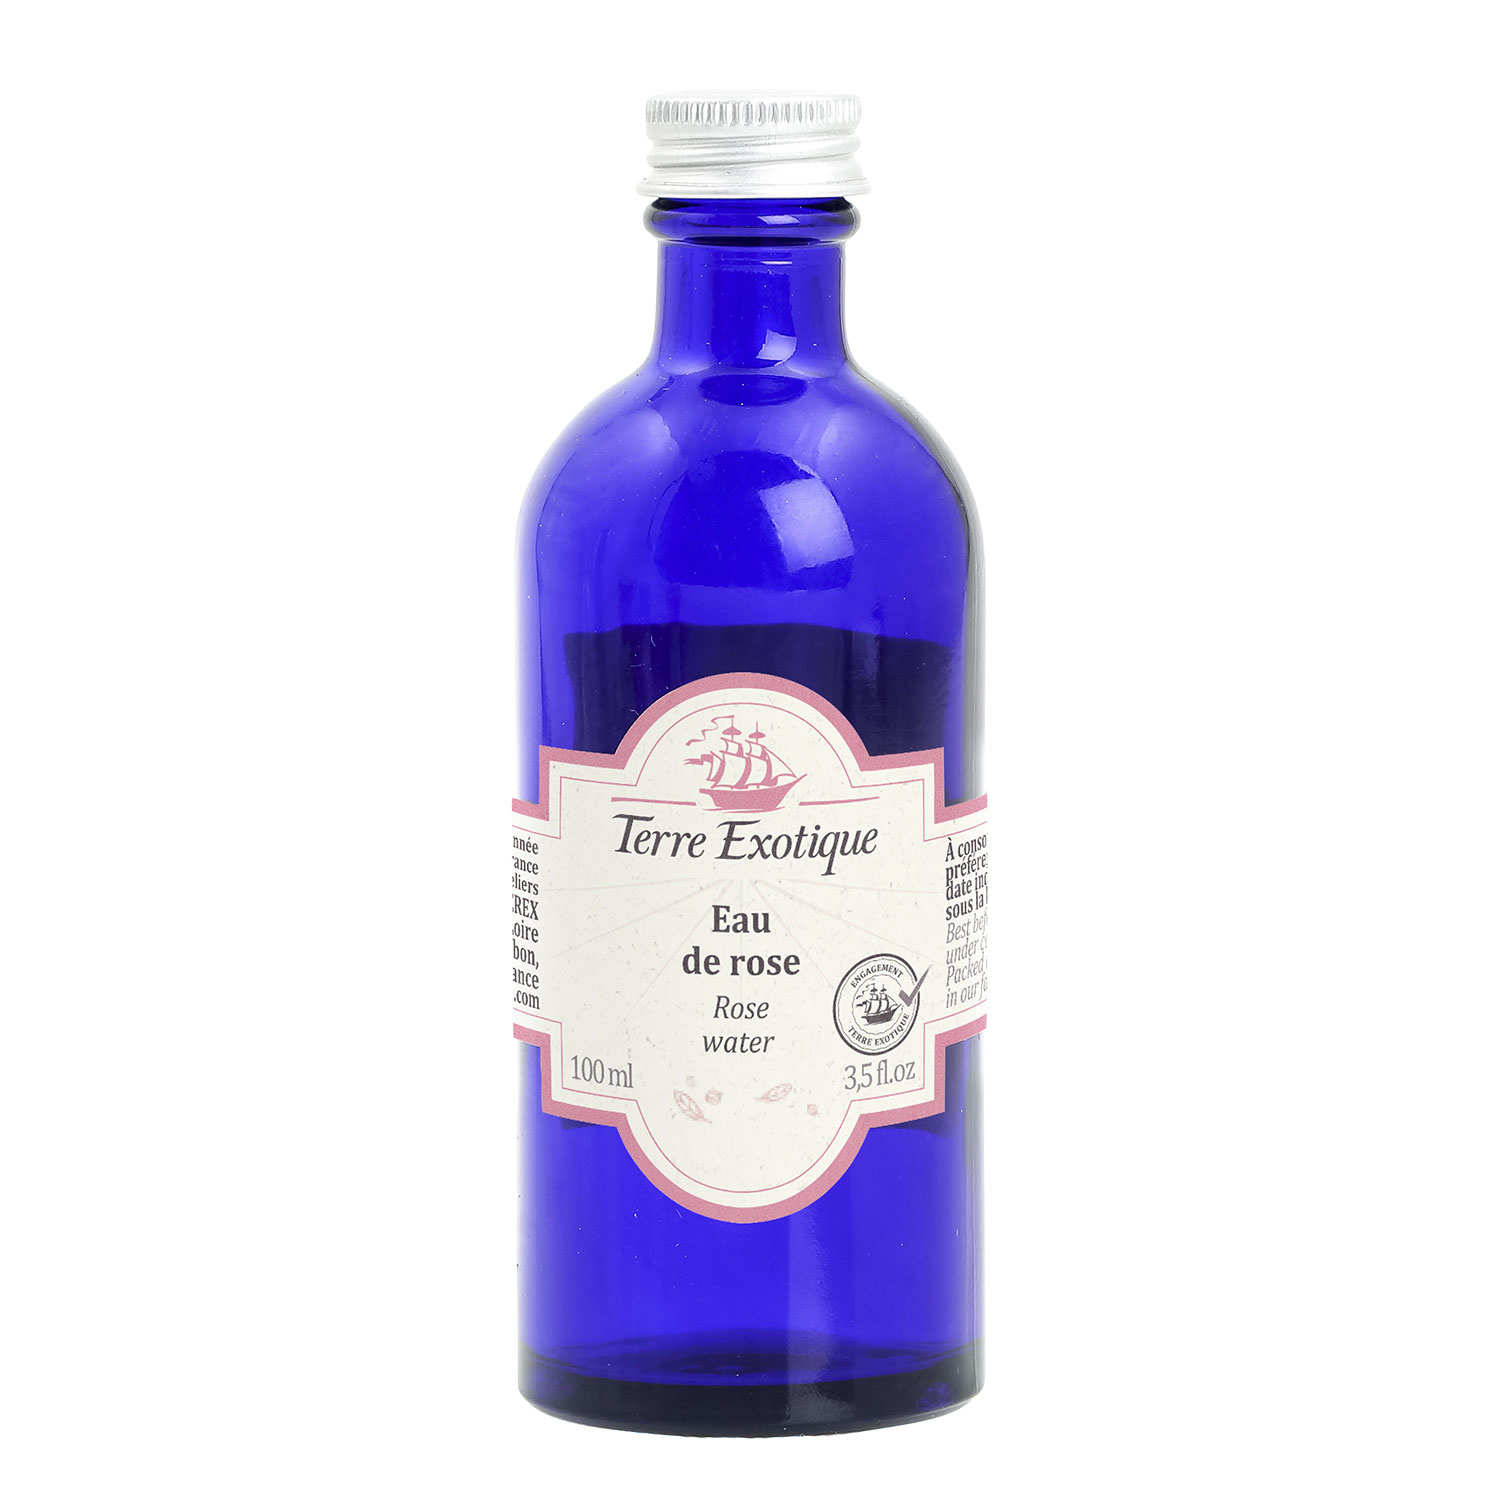 Organic Rose water from Grasse